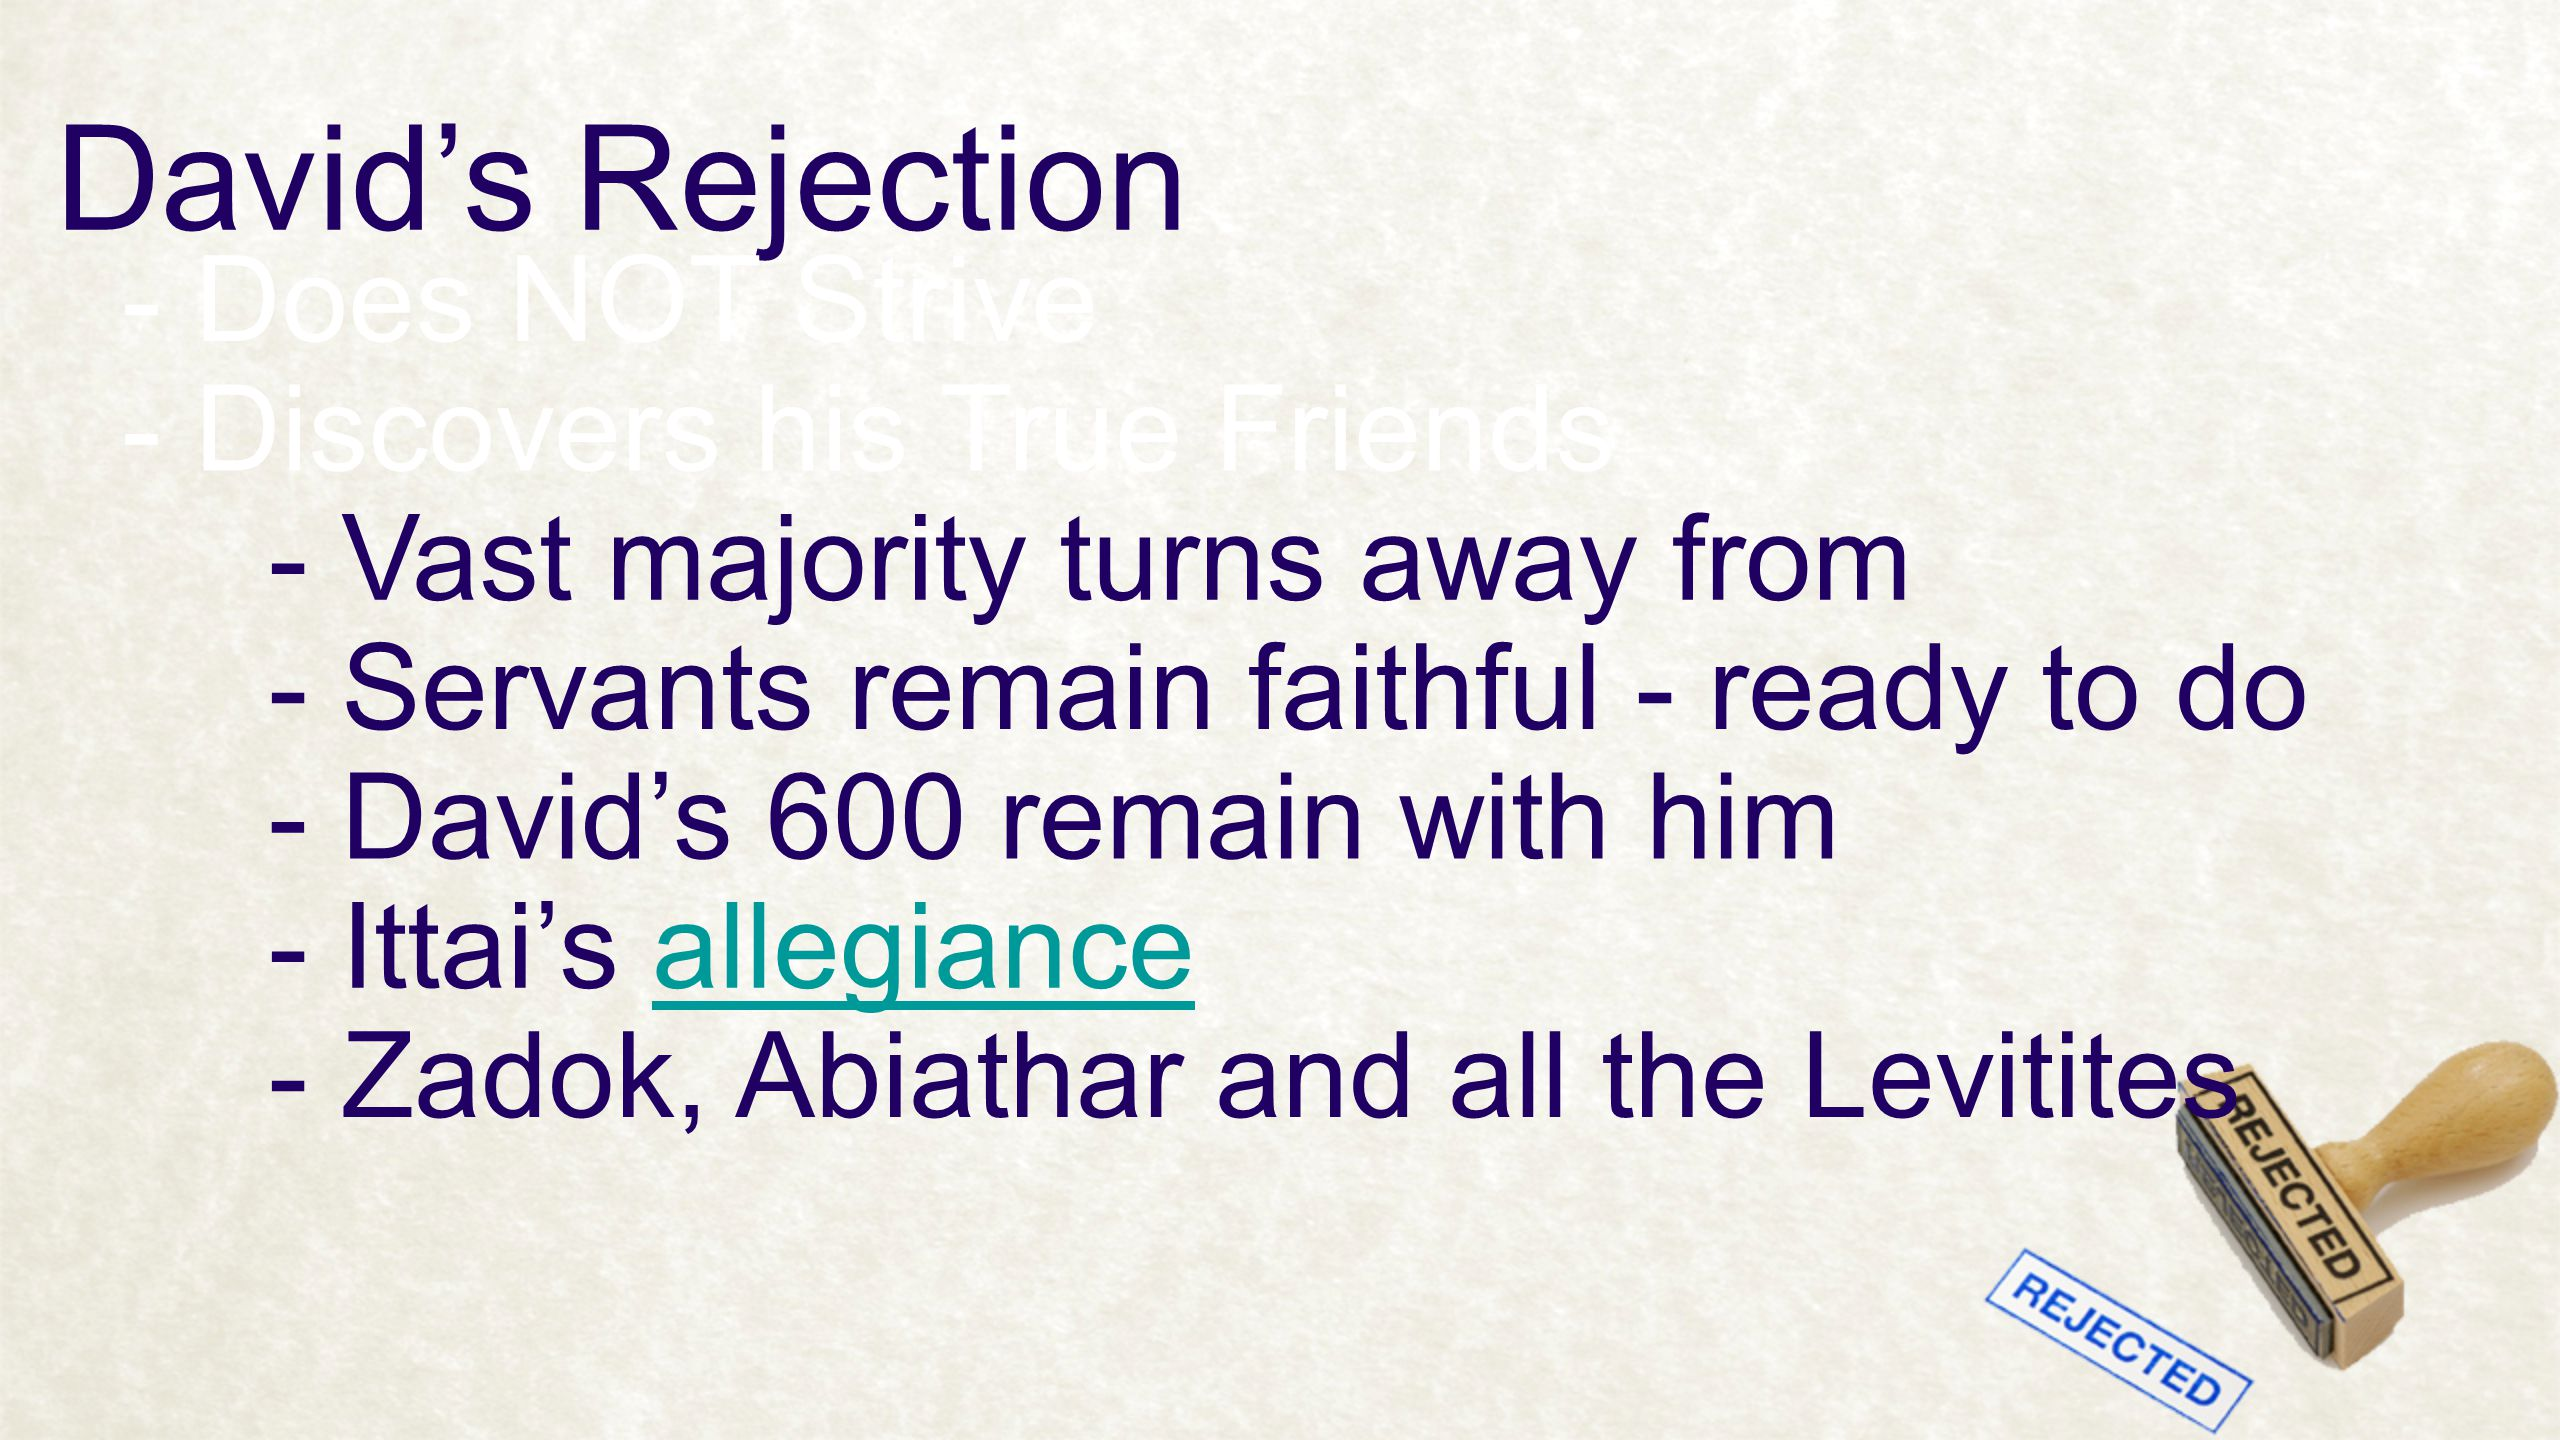 David's Rejection - Does NOT Strive - Discovers his True Friends - Vast majority turns away from - Servants remain faithful - ready to do - David's 600 remain with him - Ittai's allegianceallegiance - Zadok, Abiathar and all the Levitites